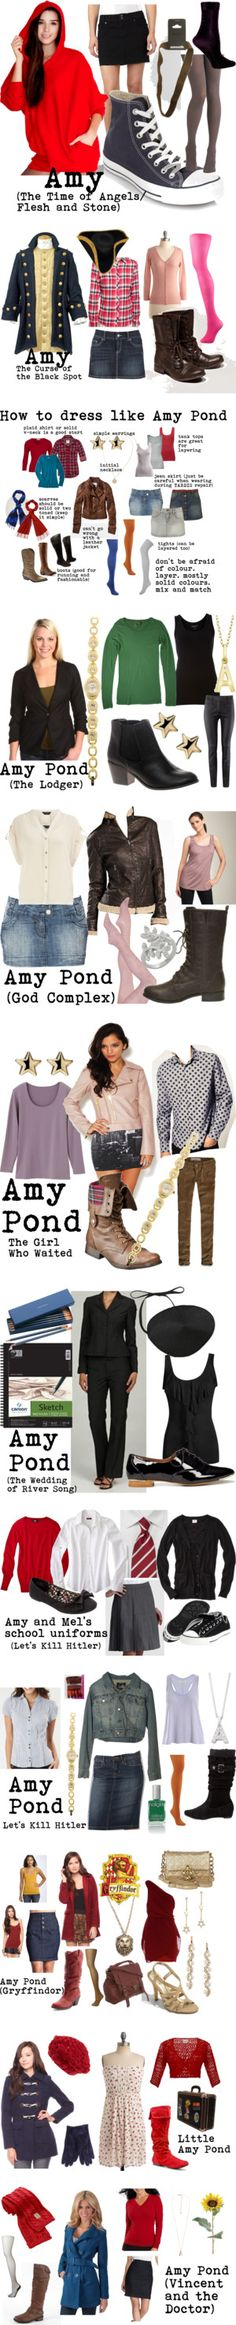 """Amy Pond"" by doctorwhodressing ❤ liked on Polyvore"